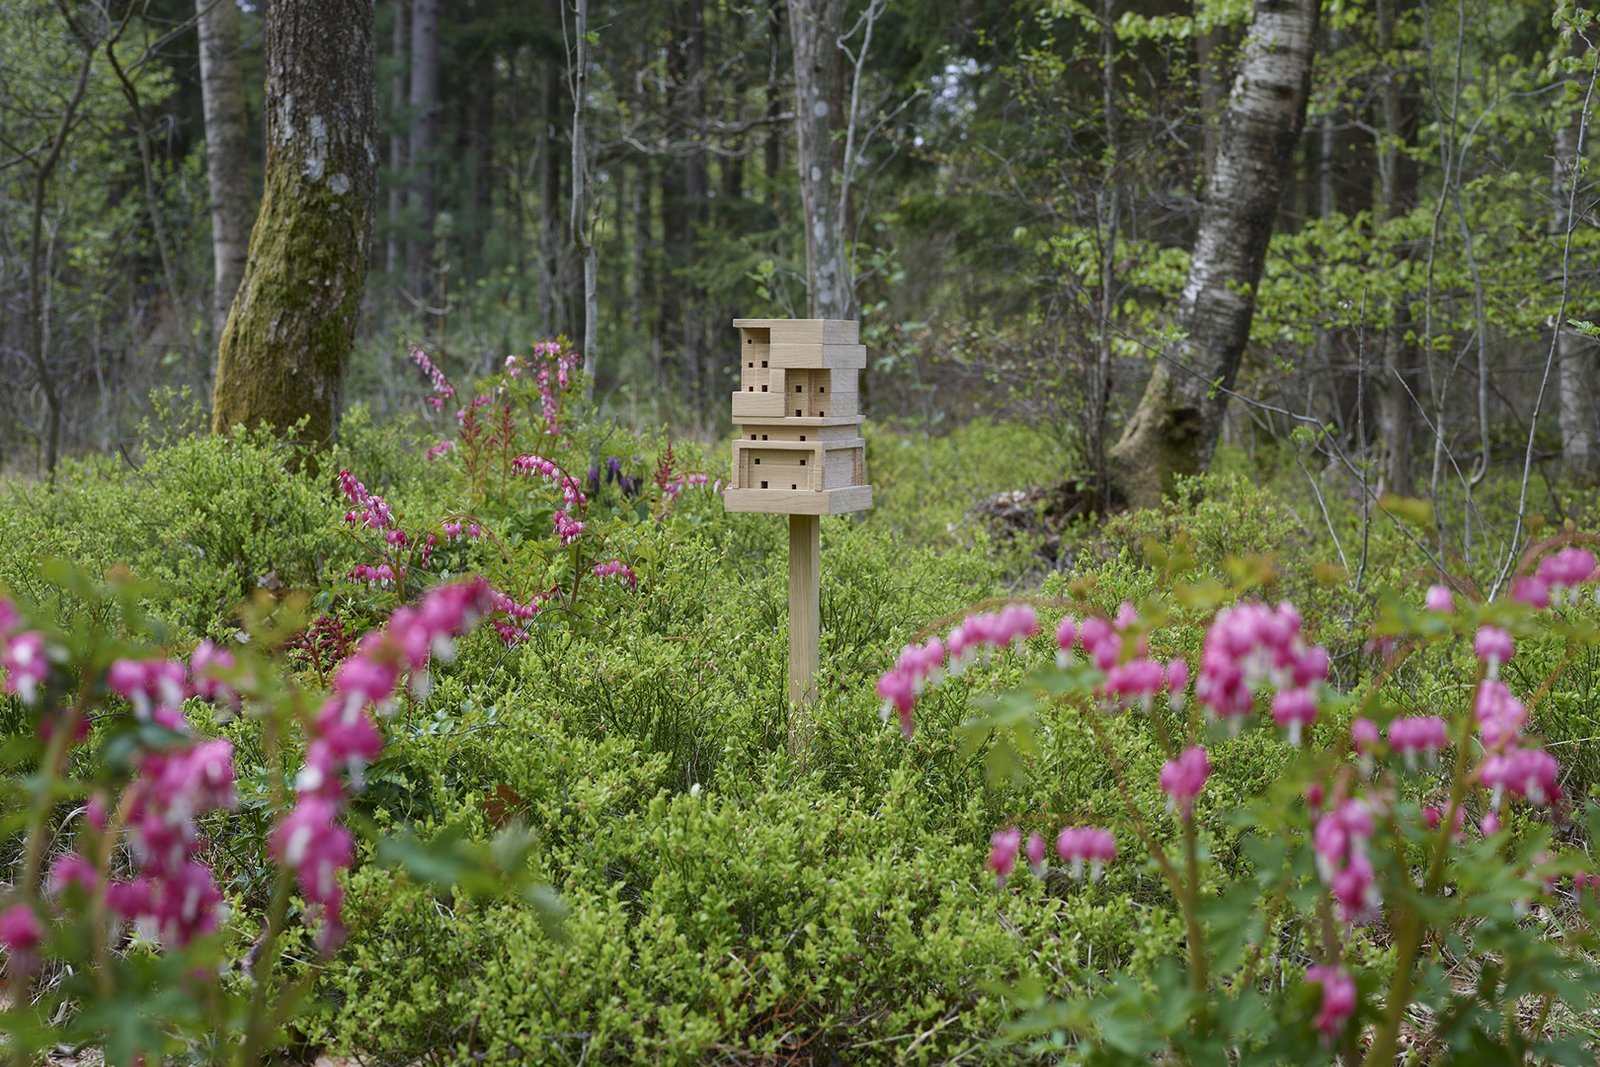 The Bee Home can be set up nearly anywhere outdoors. SPACE10 and Tanita Klein hope the open-source designs will raise awareness around bees' impact on the environment and our daily lives.